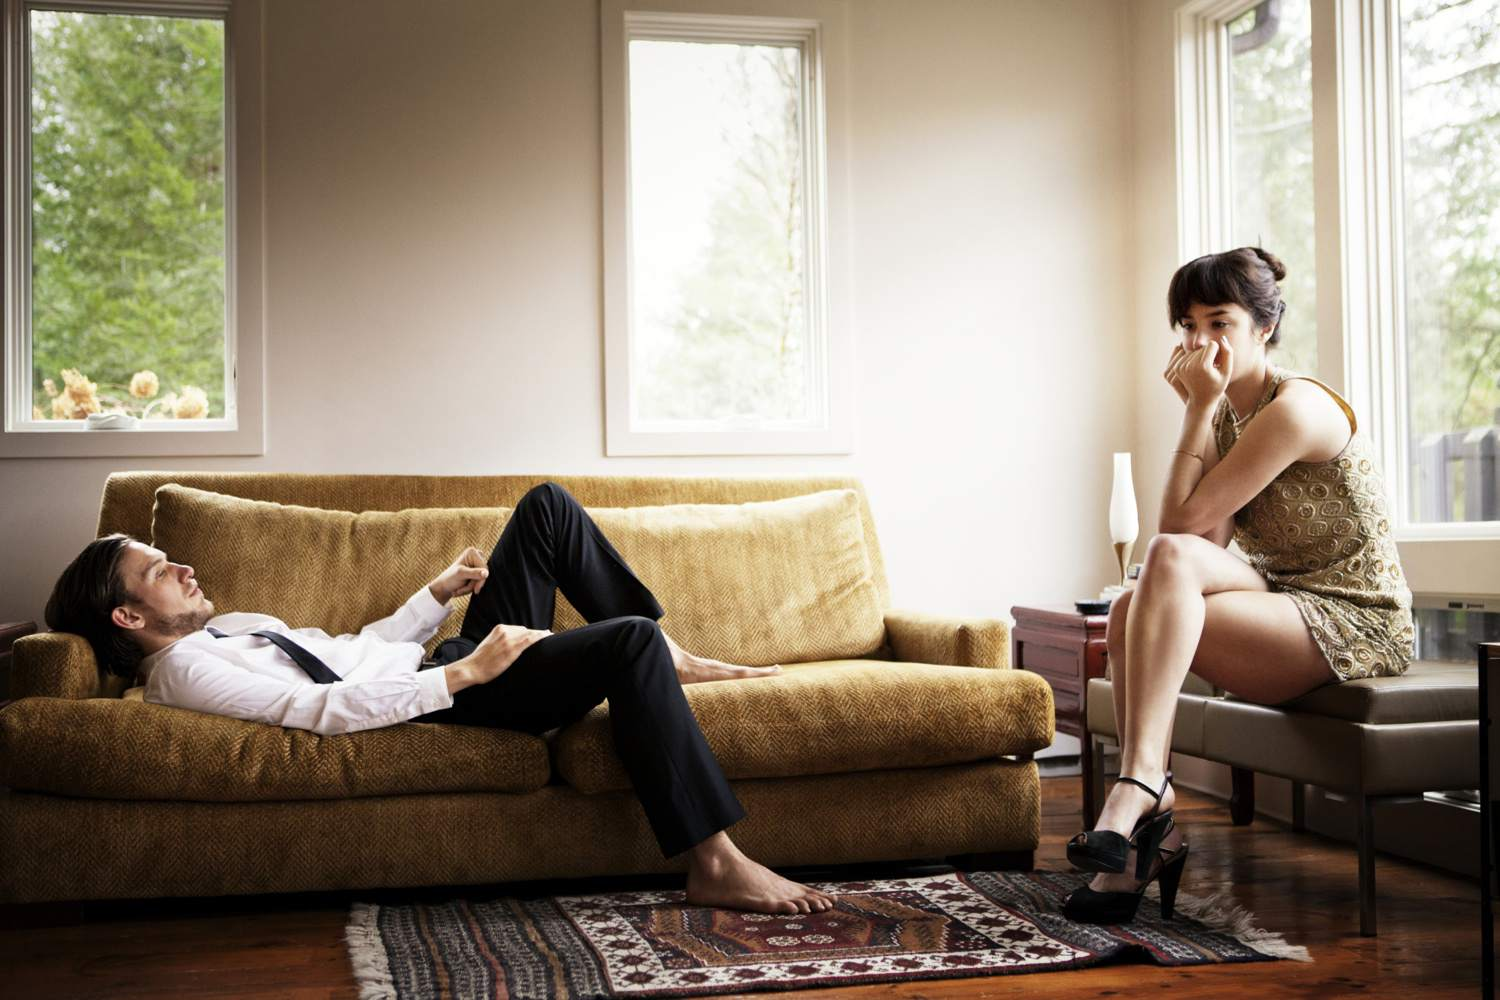 Couple looking tense and distant in a living room